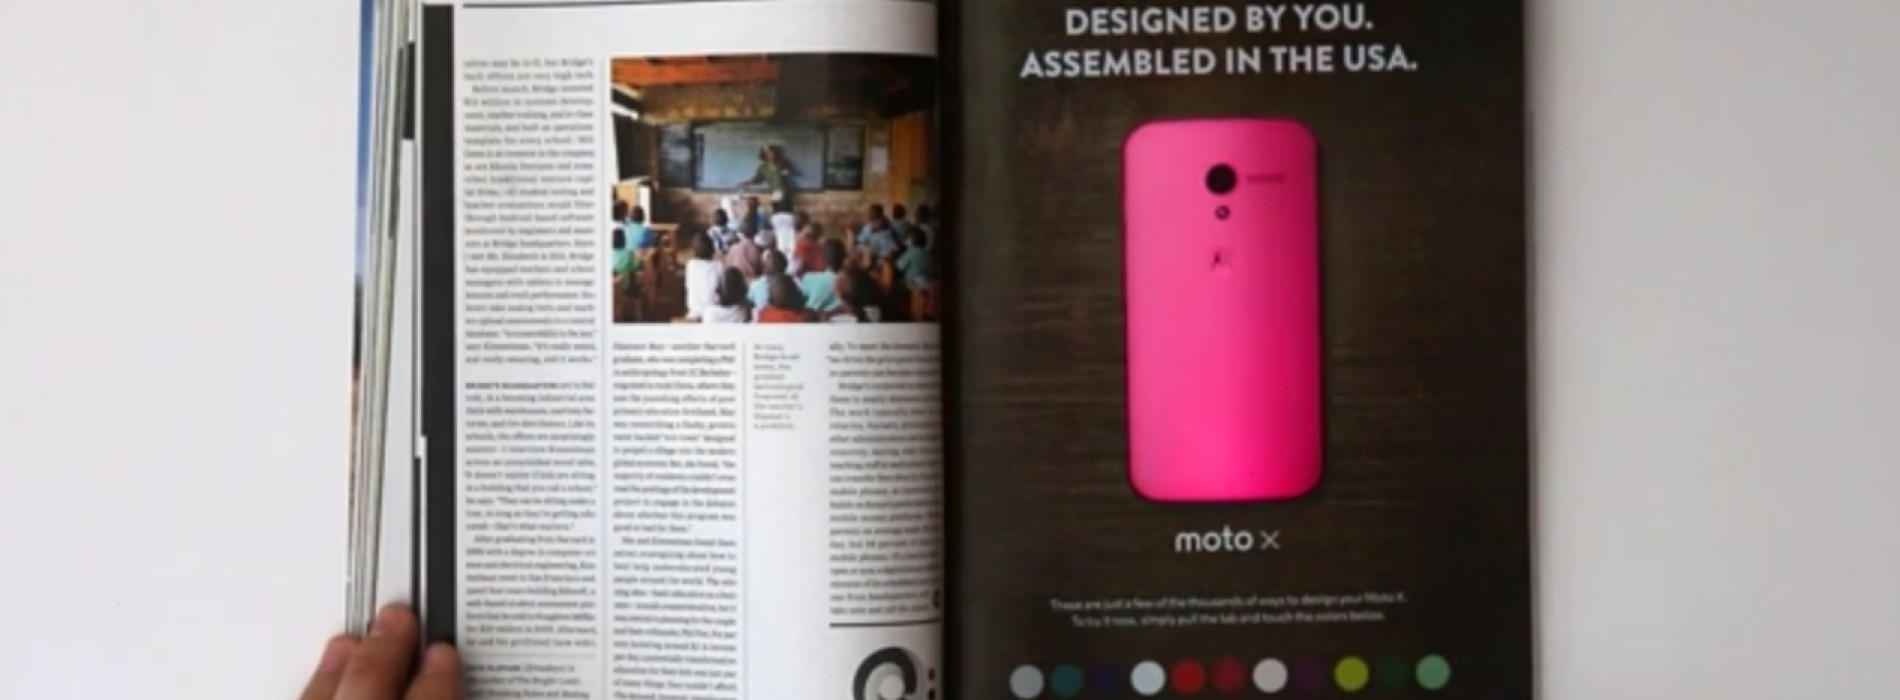 Motorola's Moto X ad in WIRED is 'first interactive print experience'